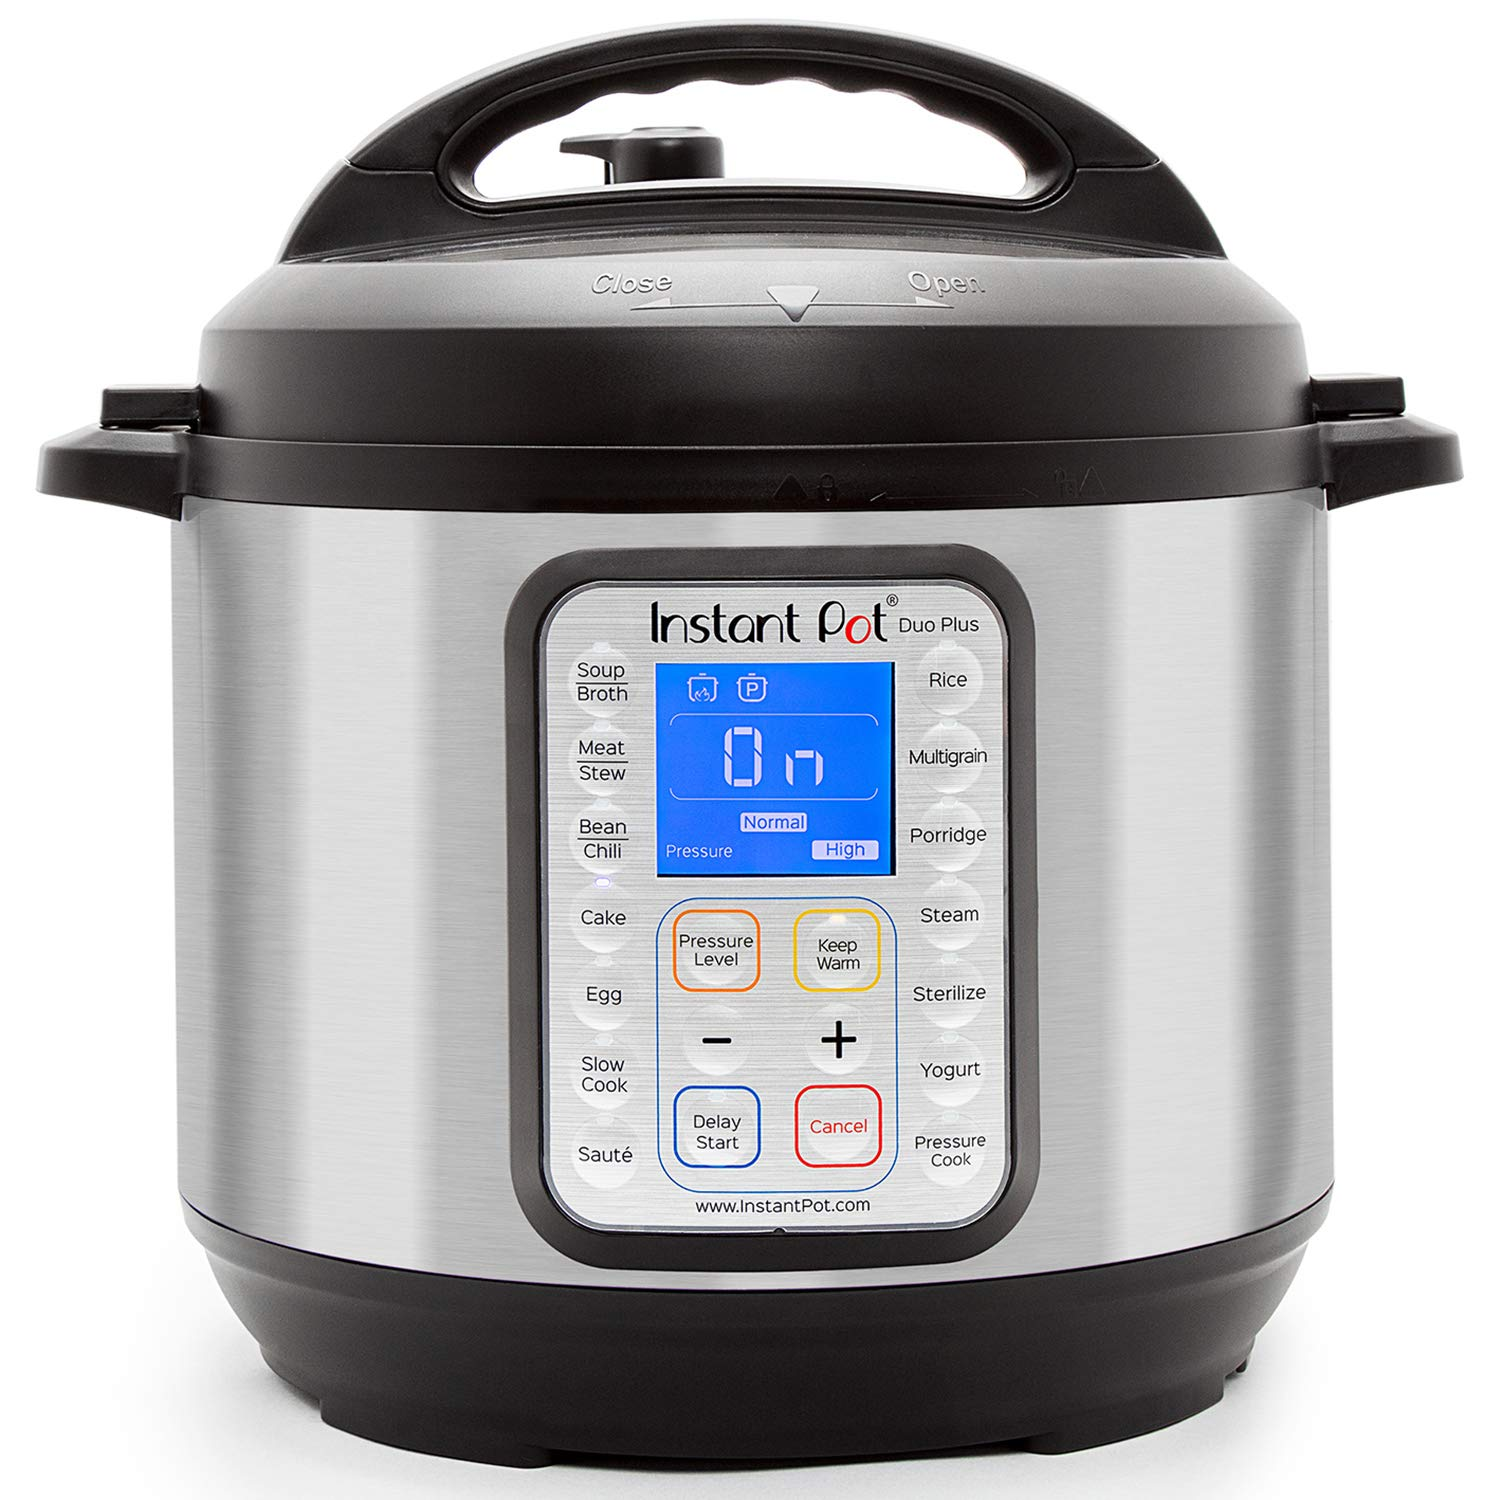 Buy Instant Pot Duo Plus 8 Qt 9 In 1 Multi Use Programmable Pressure Cooker Slow Cooker Rice Cooker Yogurt Maker Egg Cooker Saute Steamer Warmer And Sterilizer Online At Low Prices In India